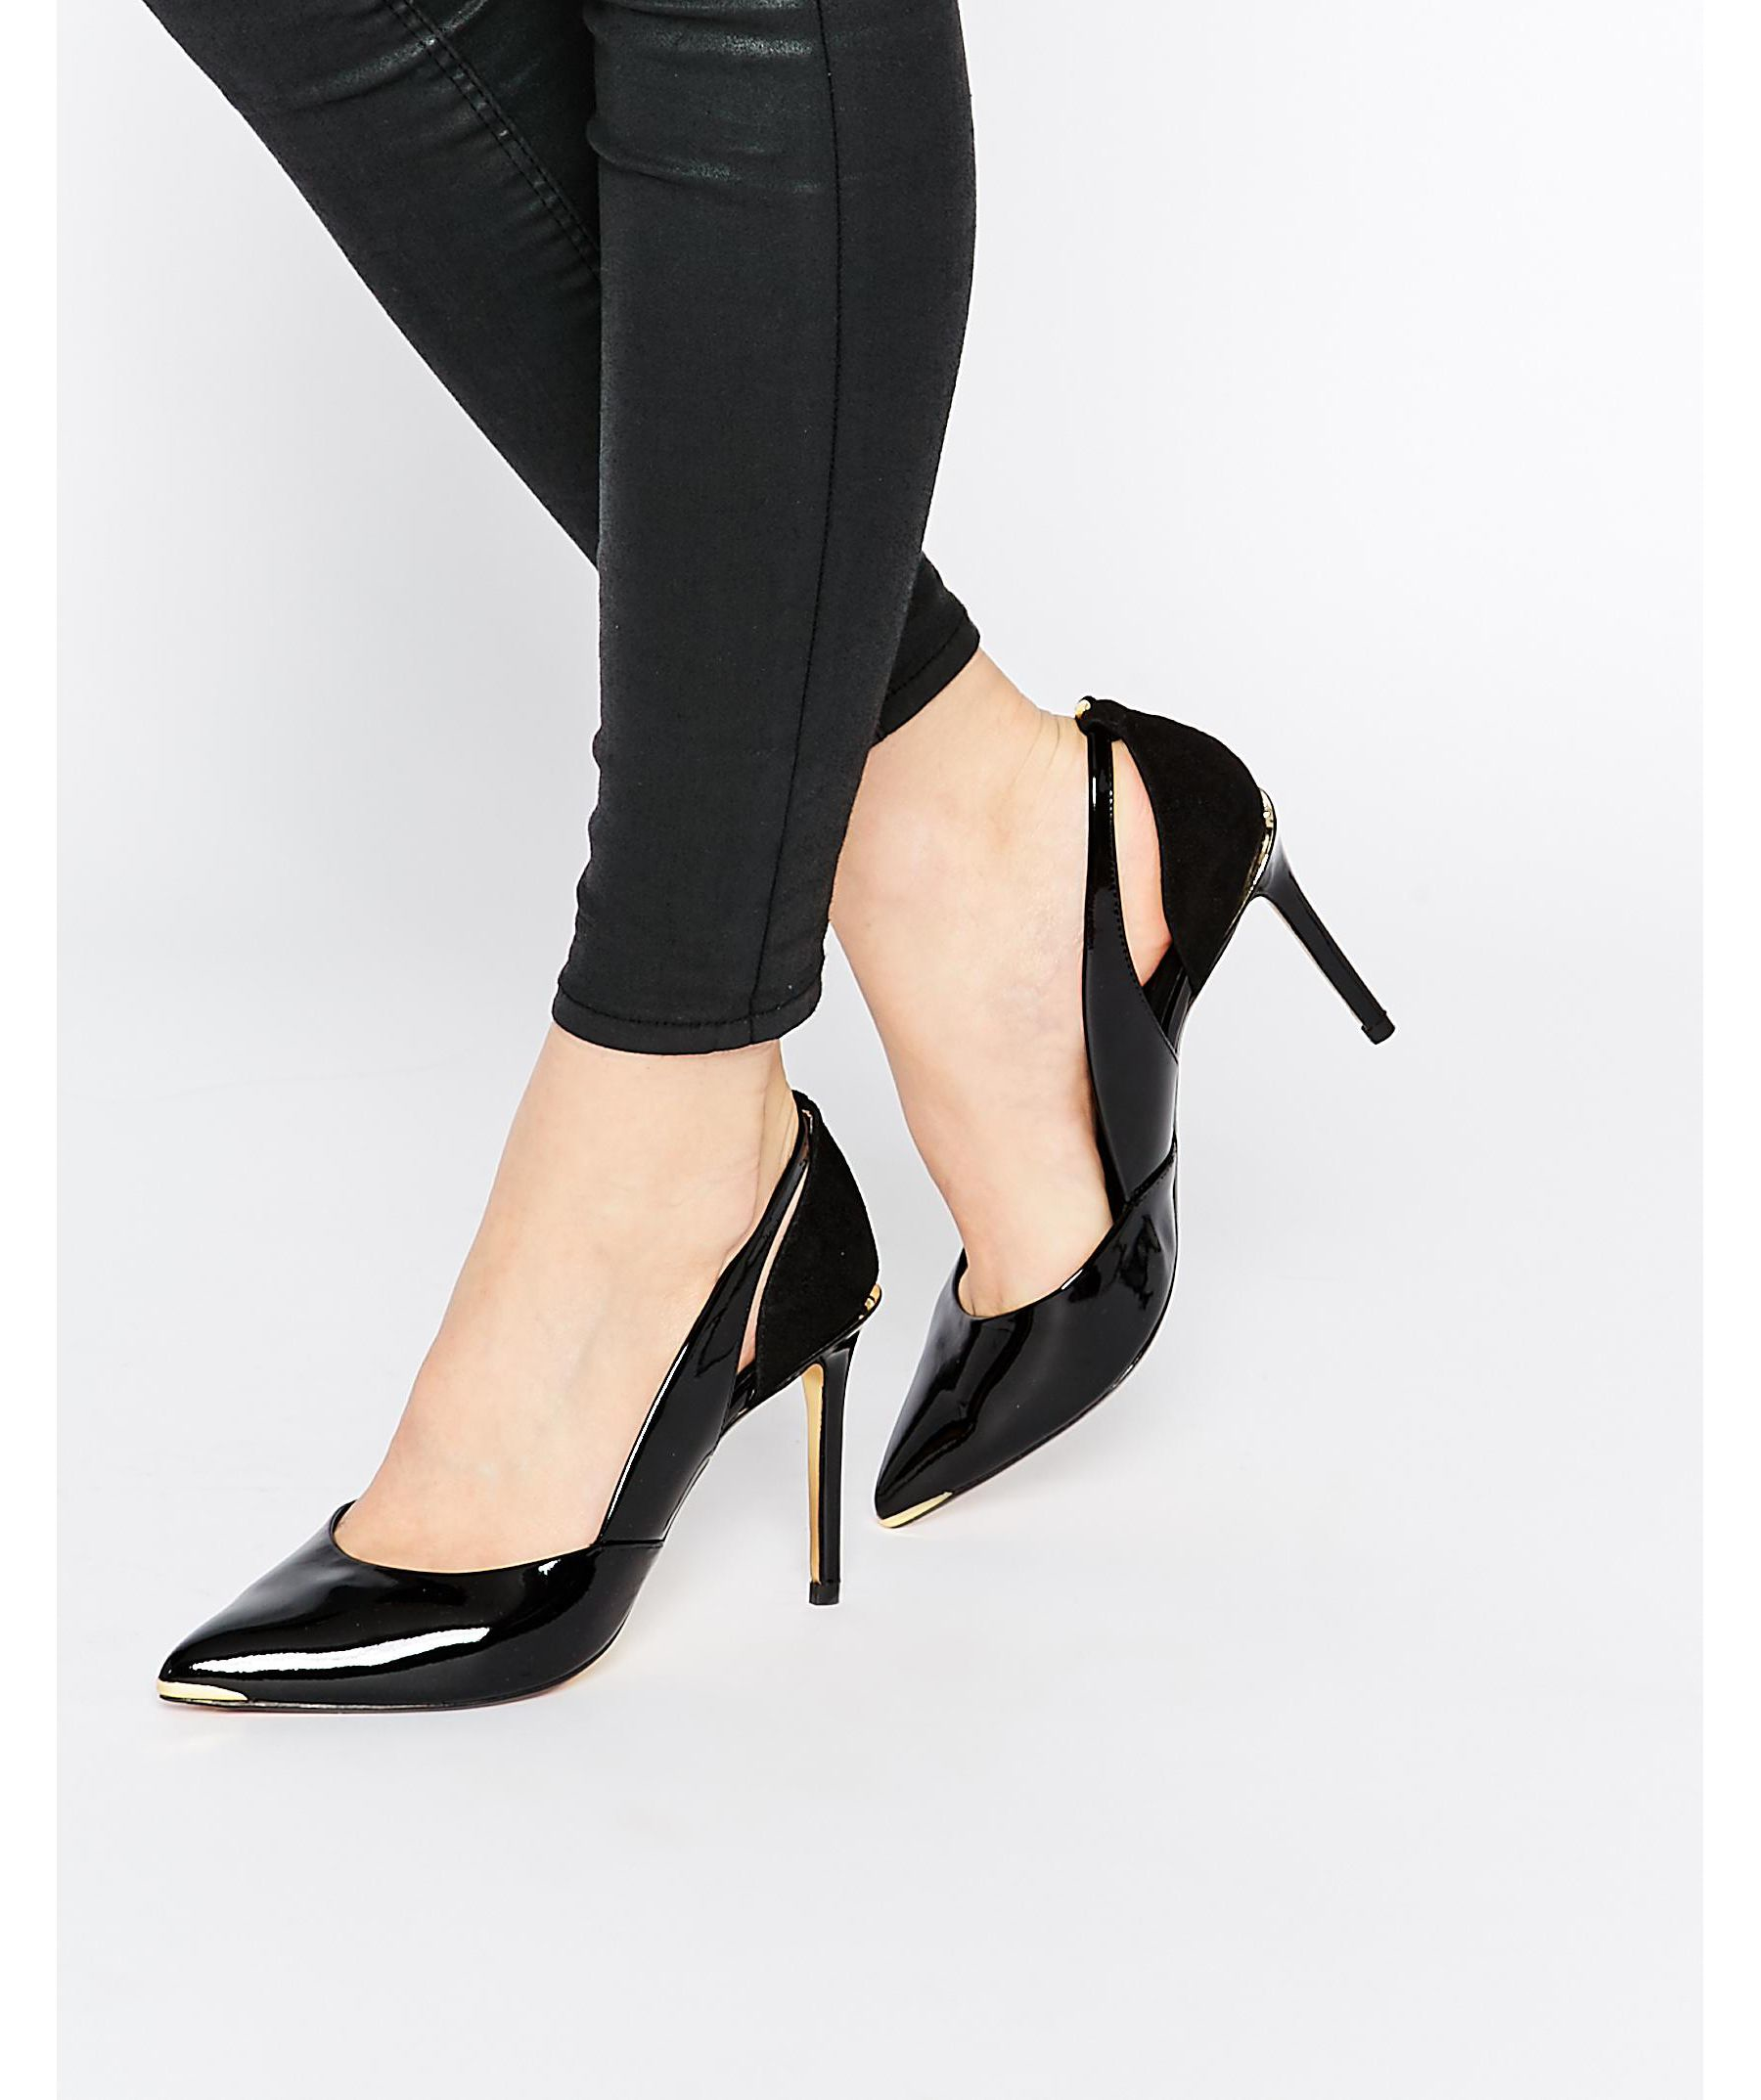 e092cc0cf2f197 Lyst - Ted Baker Jiena Patent Cut Out Heeled Pumps in Black